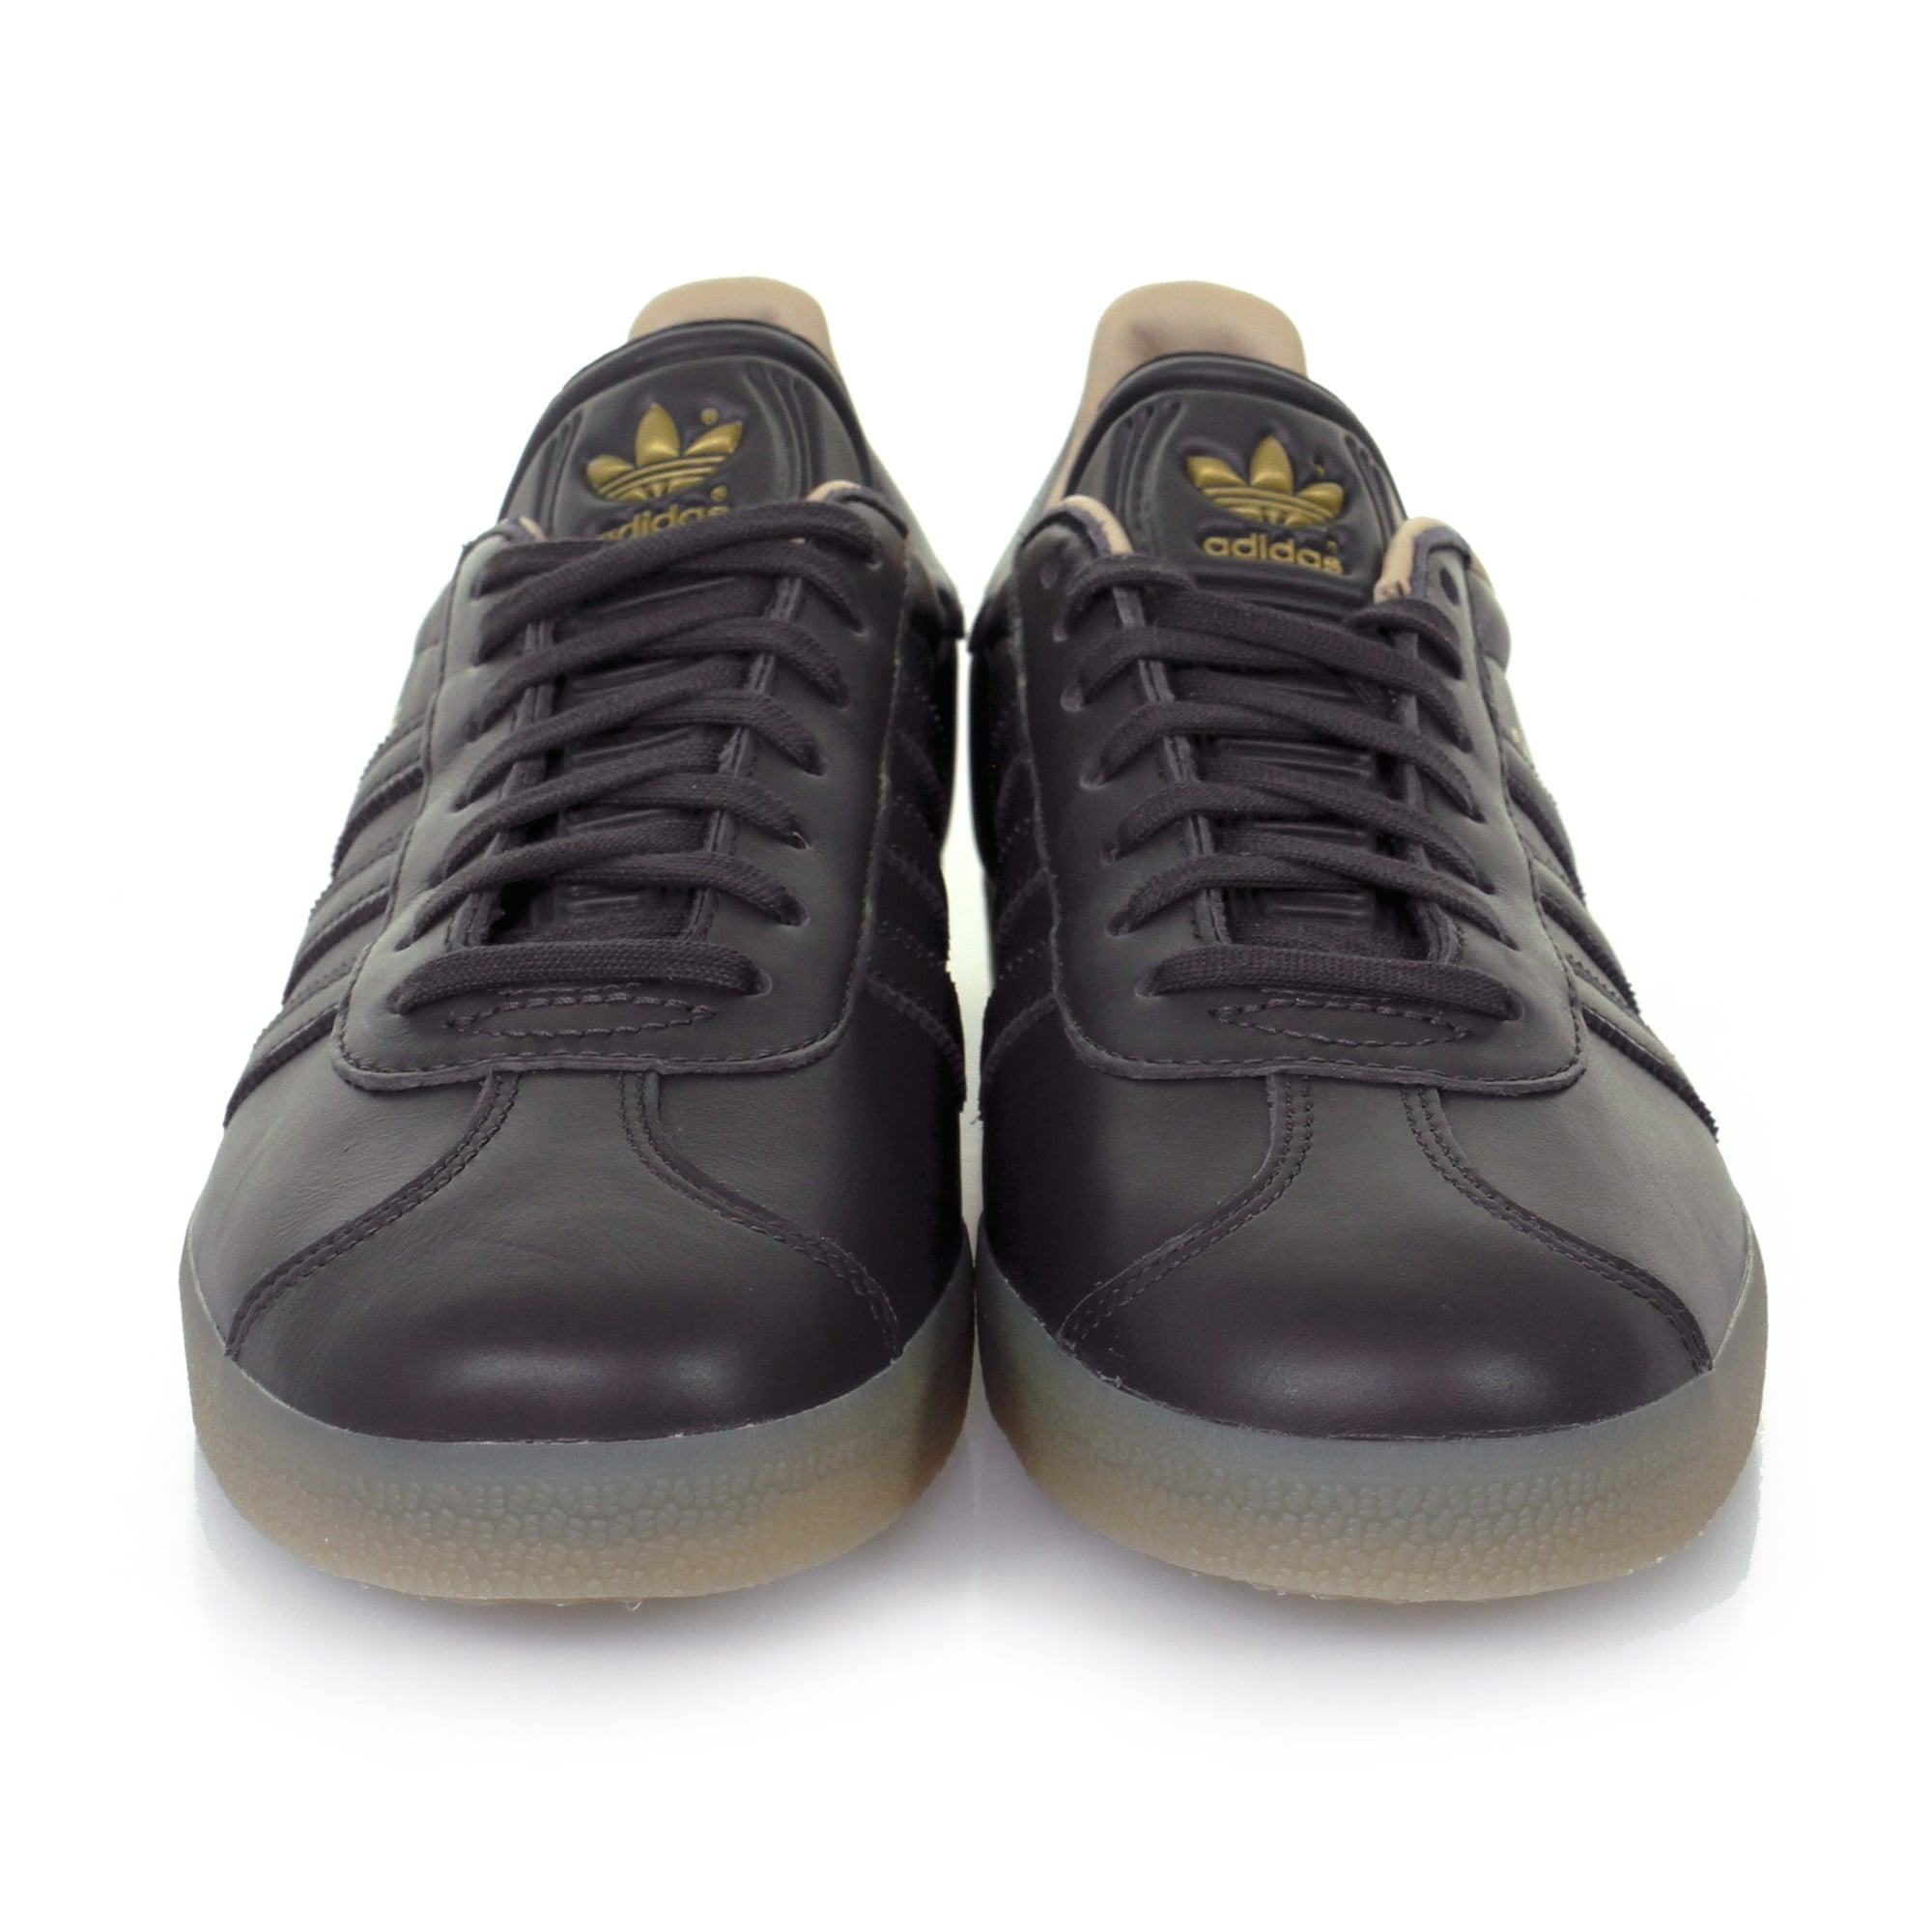 adidas shoes leather